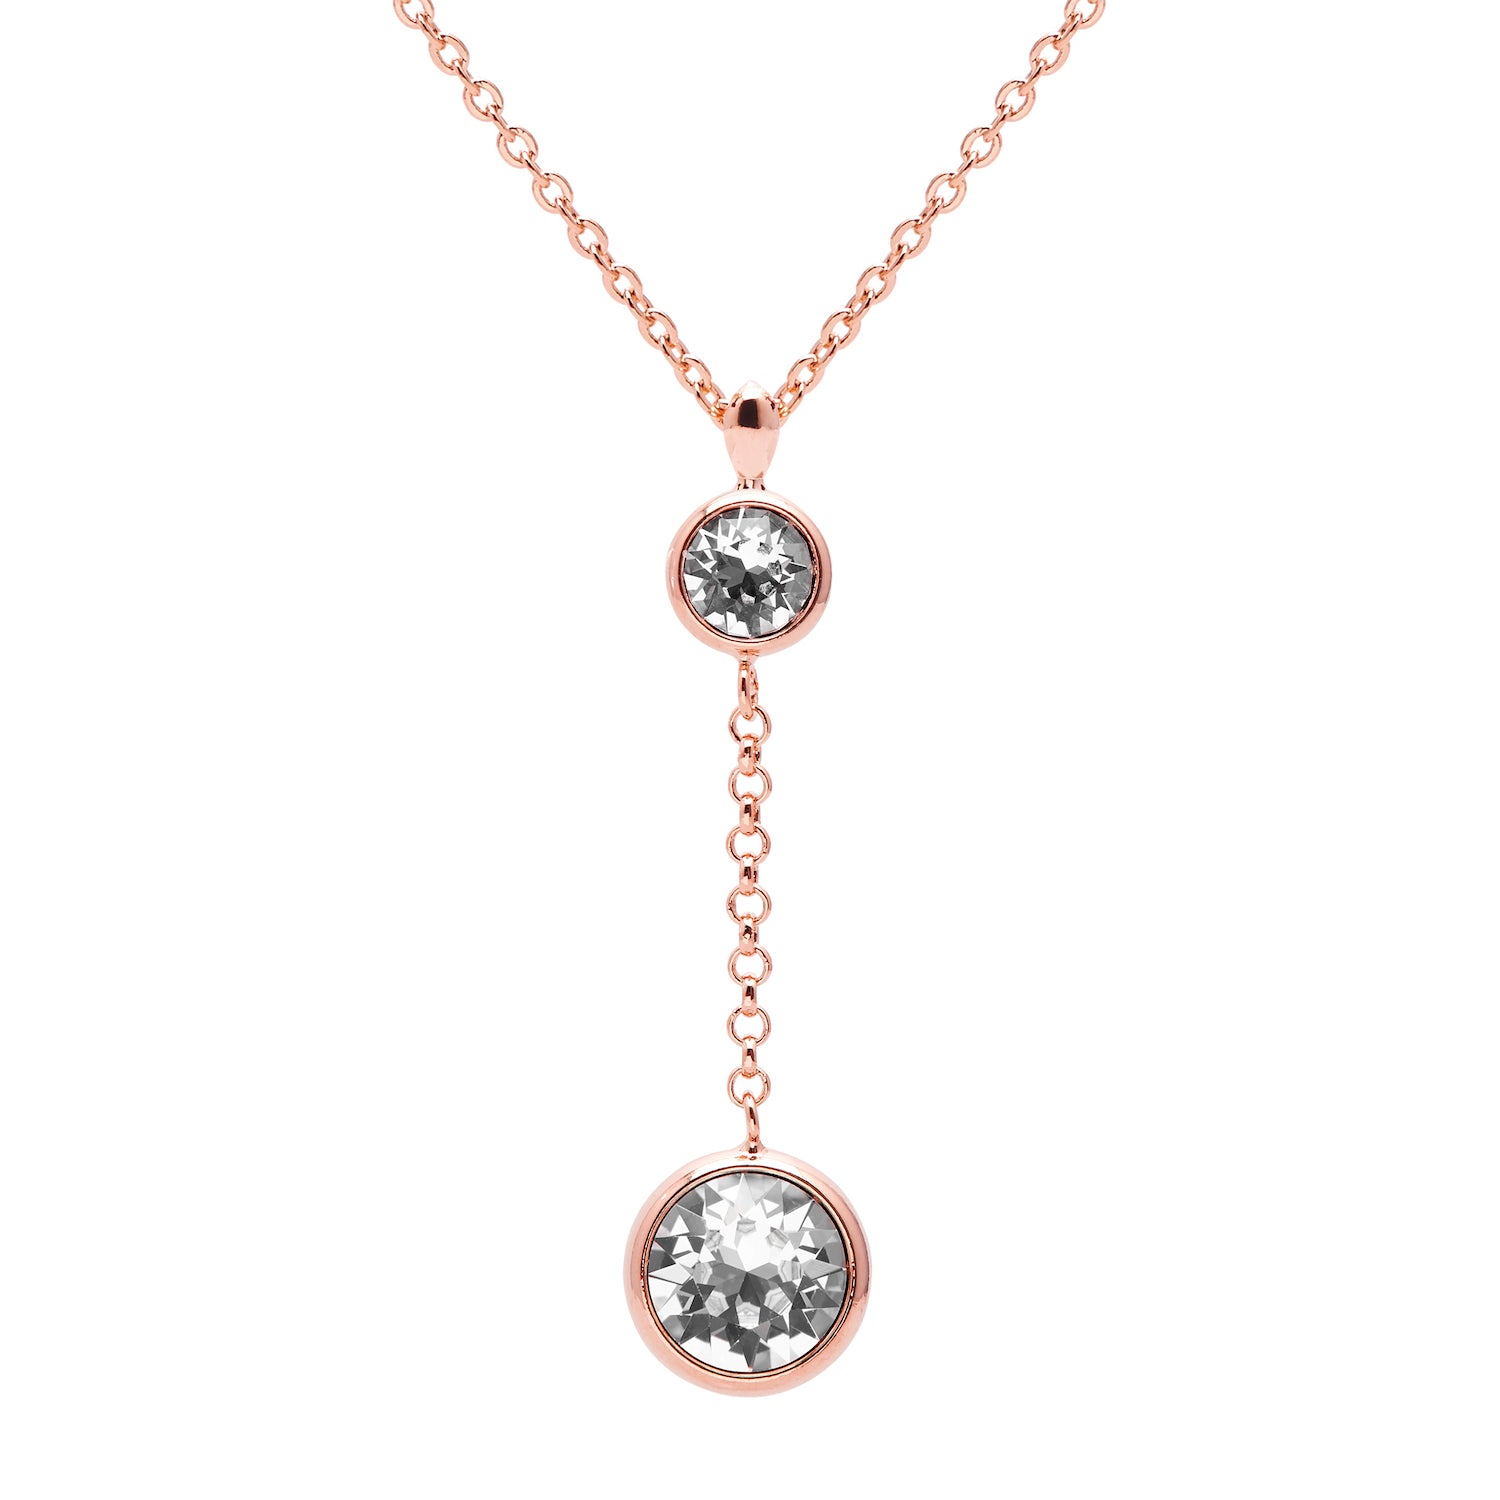 "Aura ""Evening"" 18k Rose Gold Plated Swarovski Crystal Drop Chain Pendant Necklace, 15.5"" with 2"" extender - Harpson Accessories"